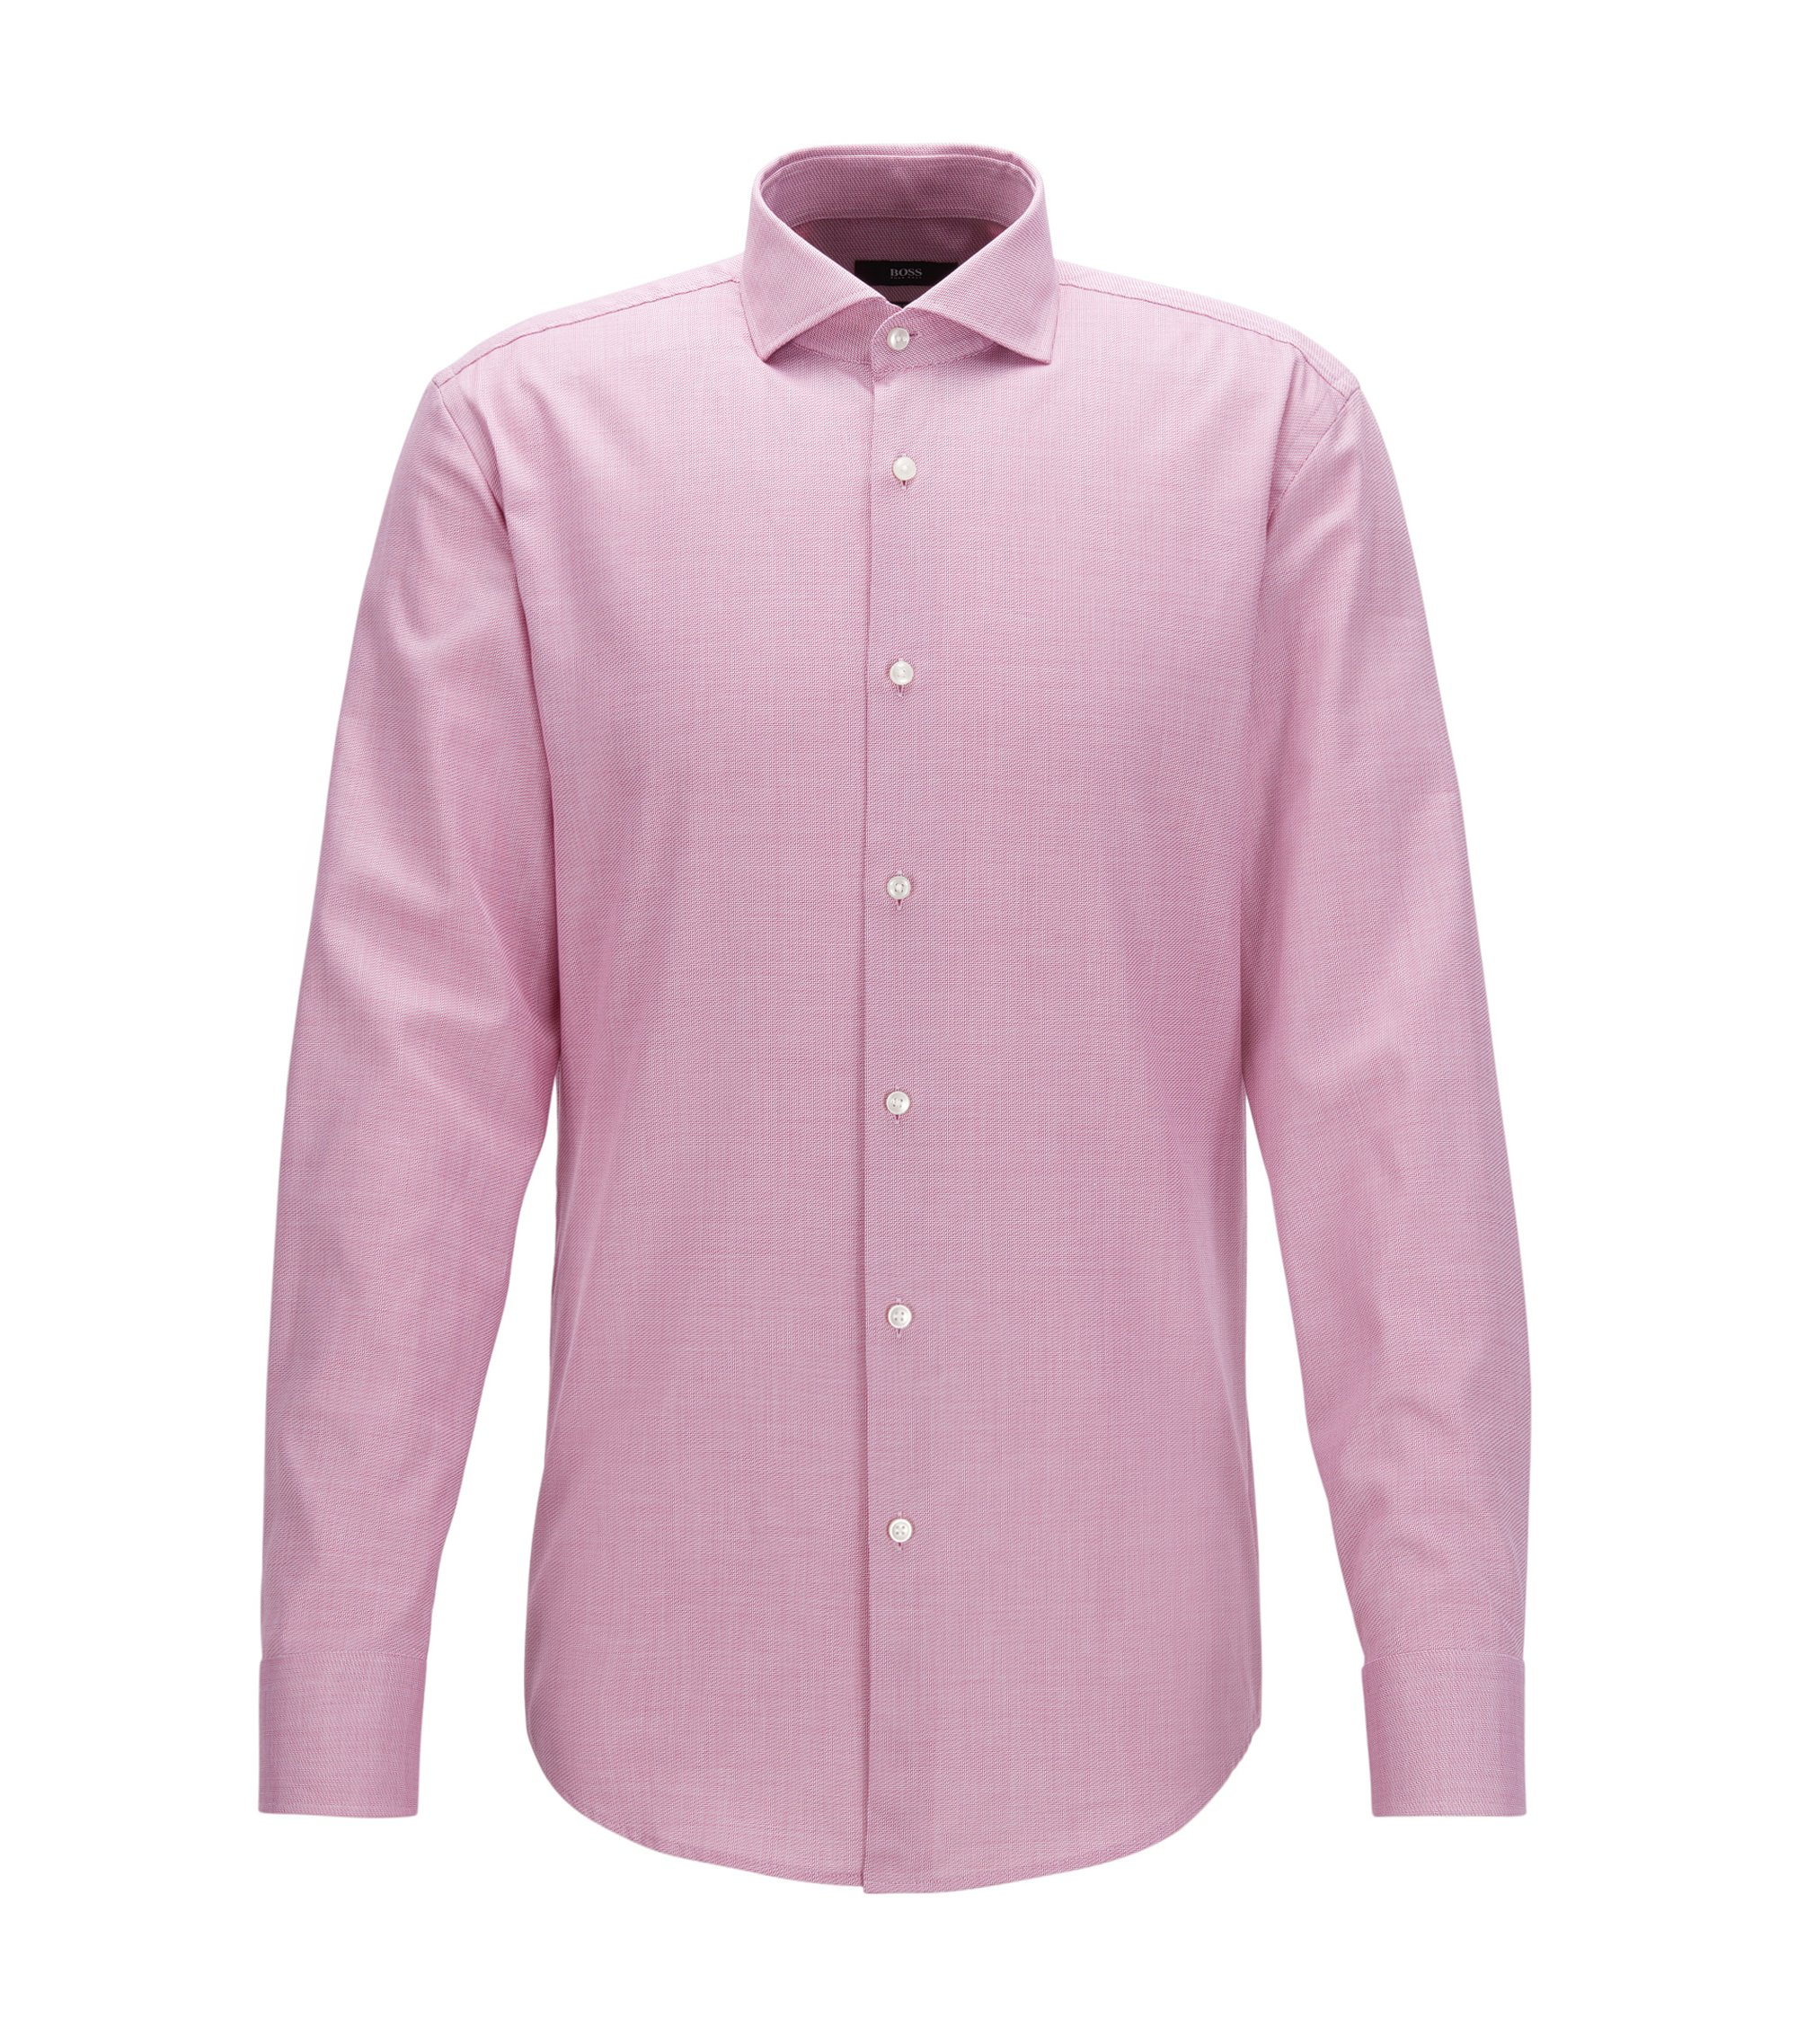 Cotton Dress Shirt, Slim Fit | Jason, Dark pink